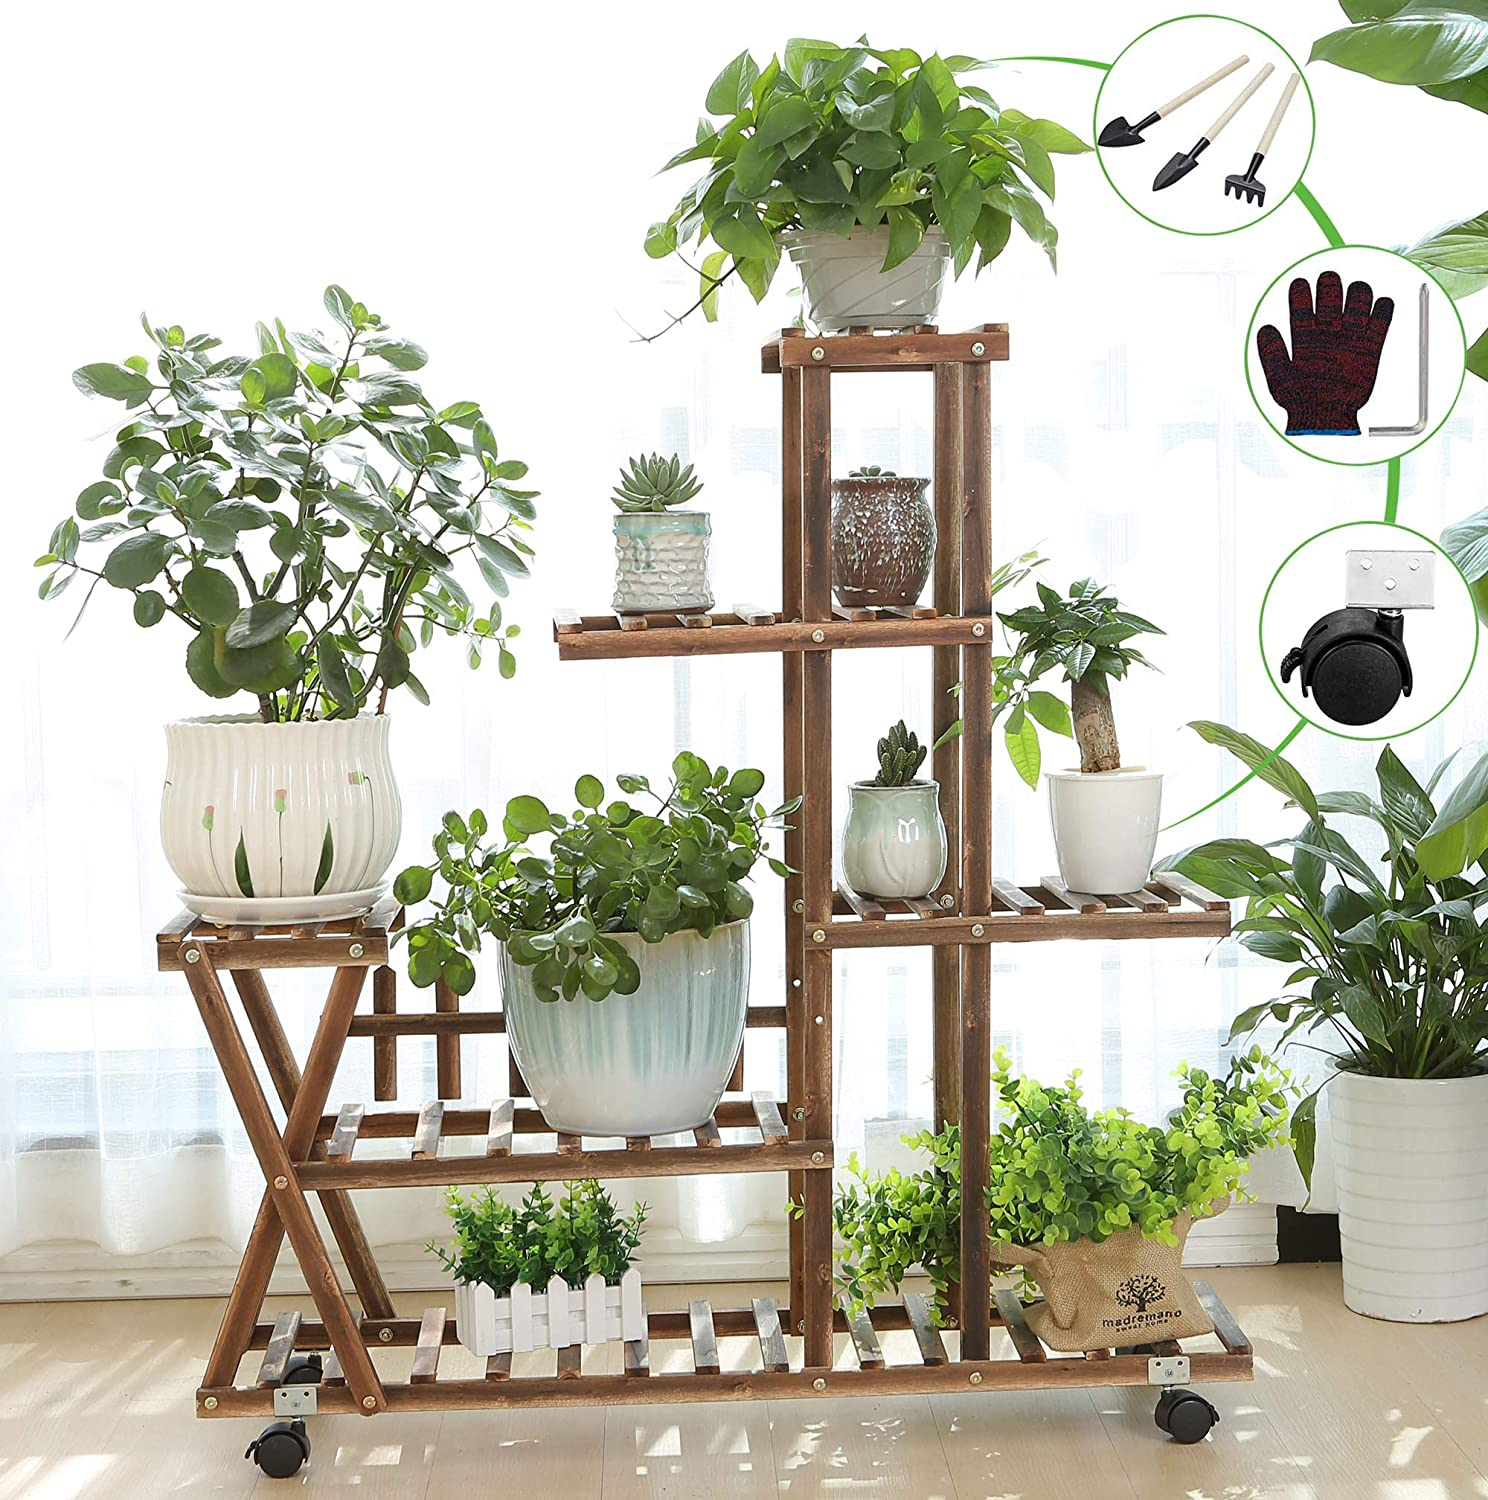 Wooden Plant Stand Shelf 5 Tier with Wheels Flower Pot Holder Display Multi-Shelvings Storage Rack for Plants Displaying Home Garden Patio Corner Outdoor Indoor (39.4inch-X3 Wheels)